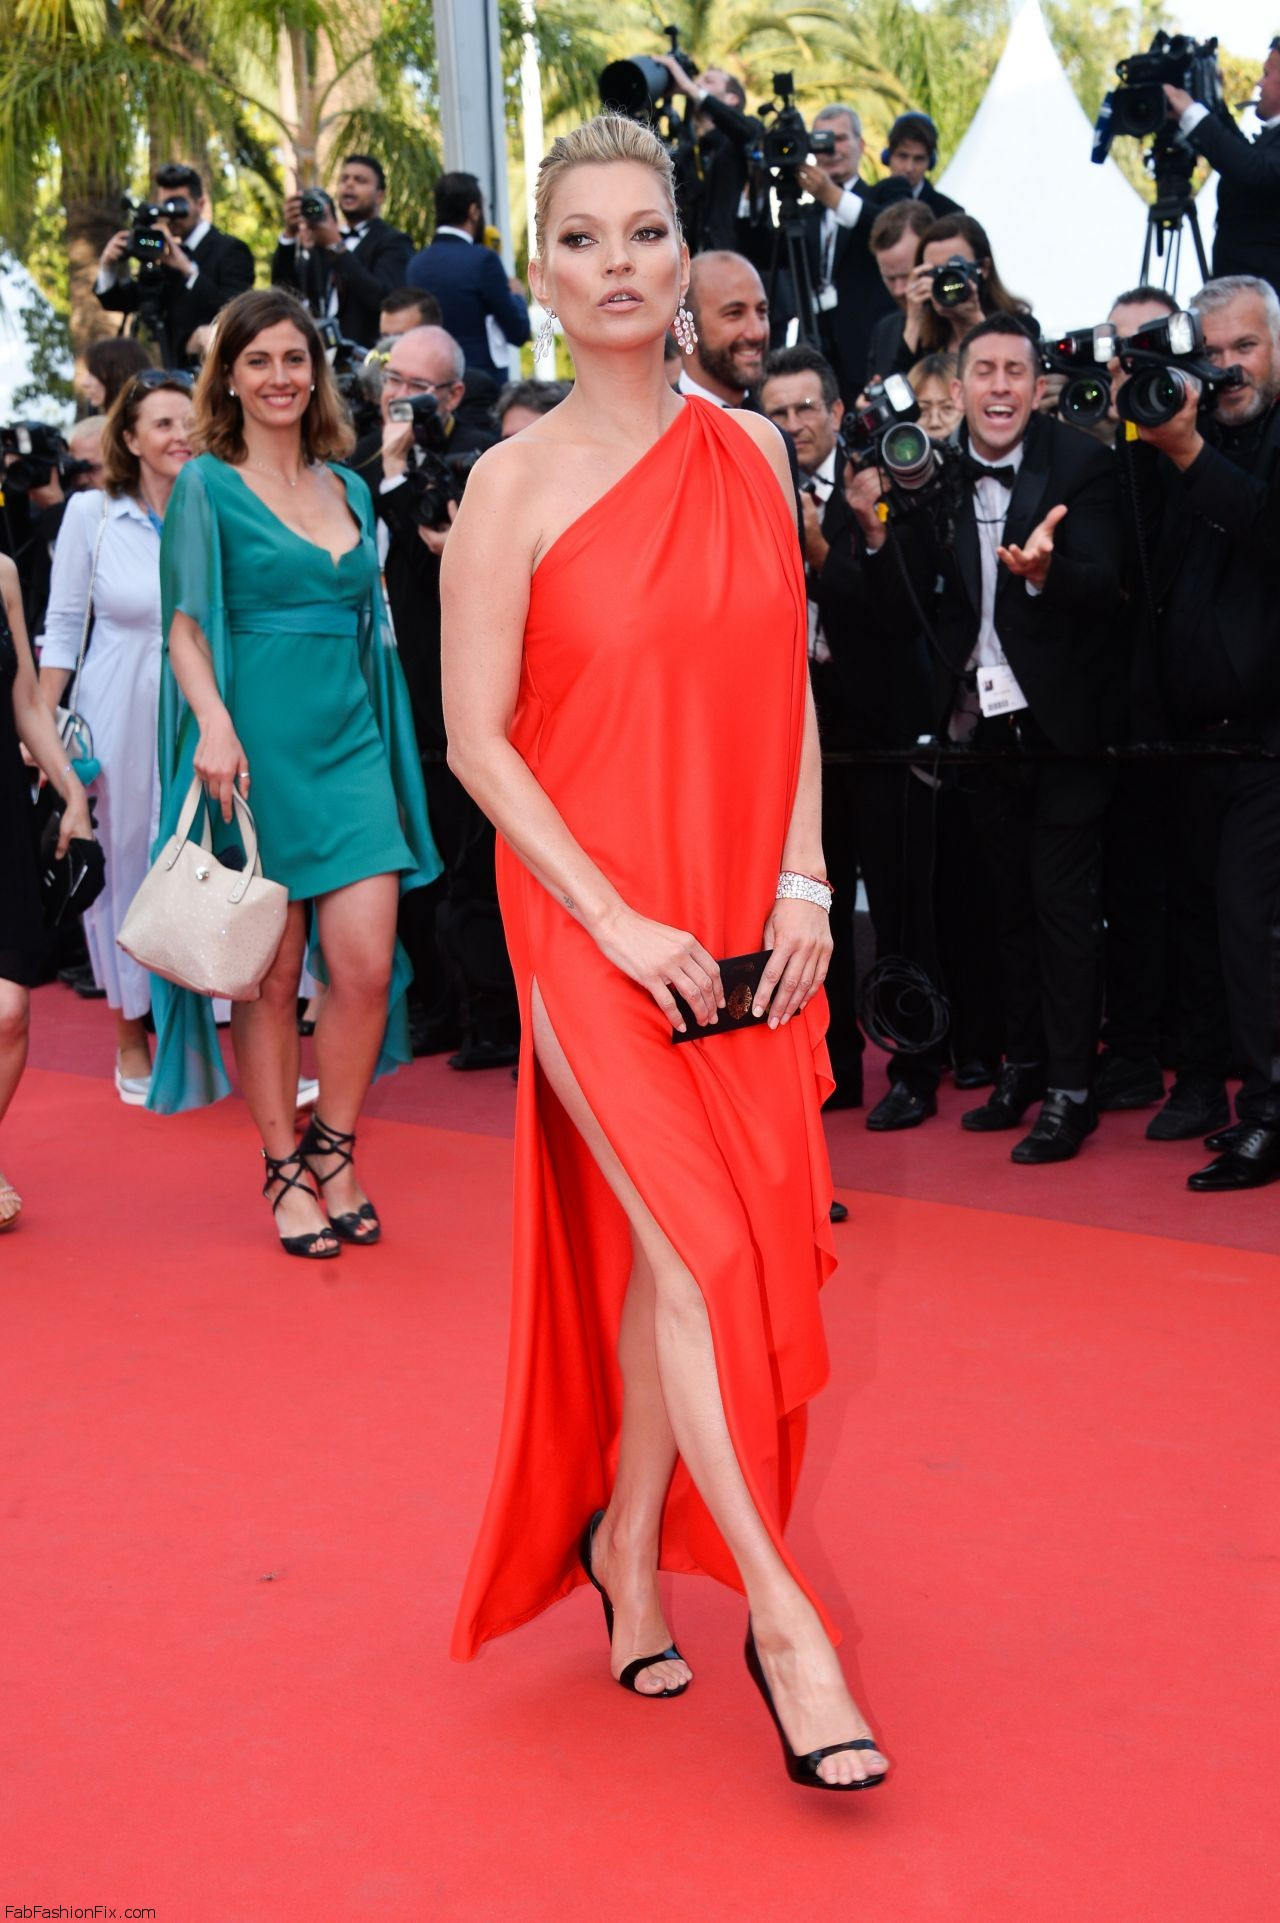 kate-moss-the-loving-premiere-at-69th-cannes-film-festival-5-16-2016-4